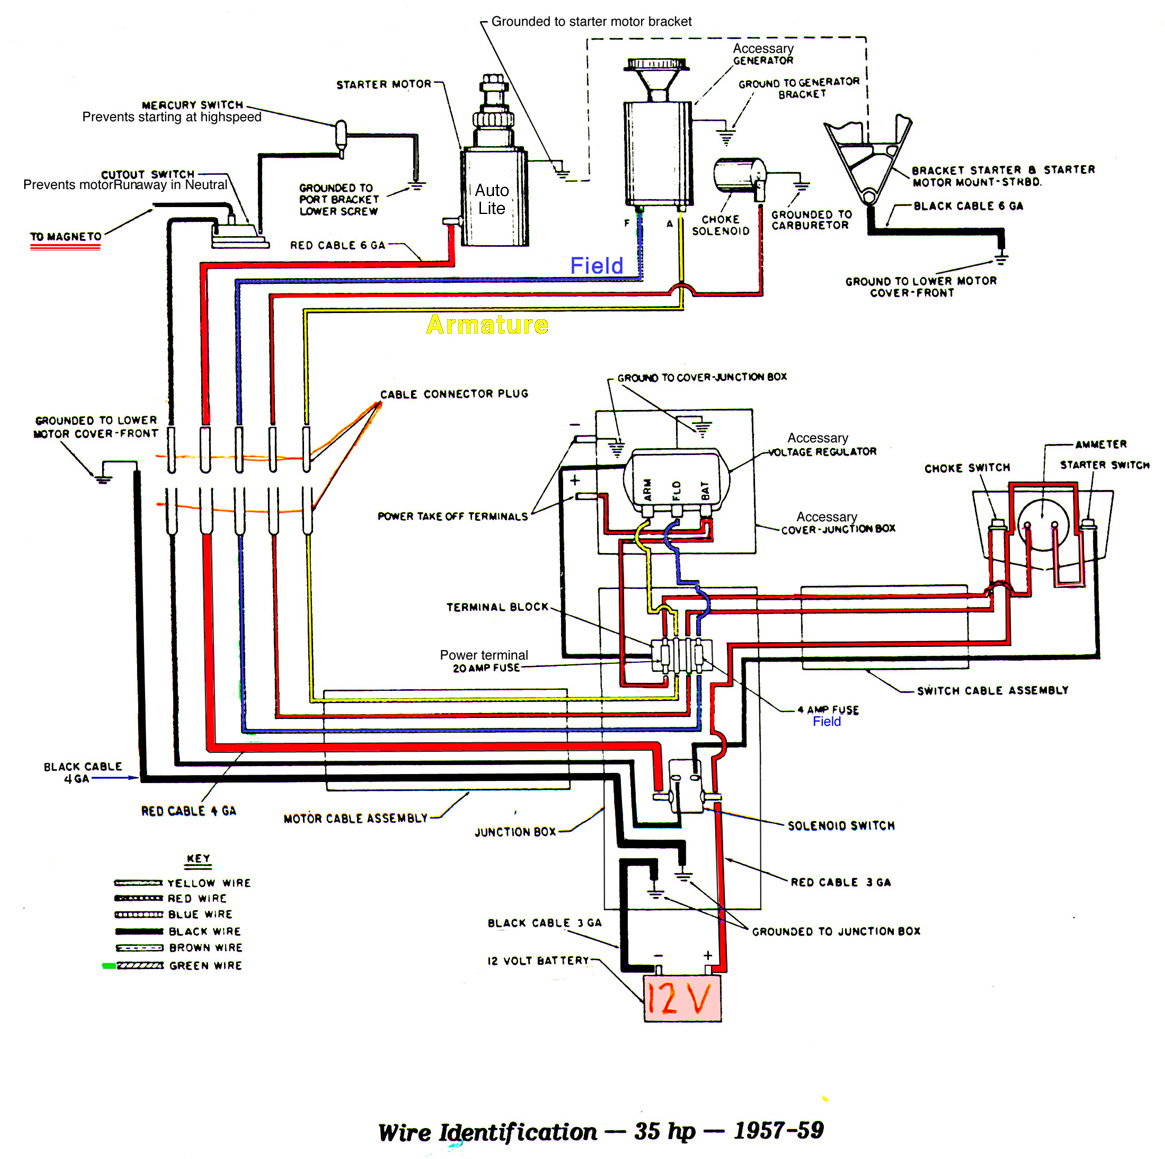 57_35HPGen 1958 johnson super seahorse 35 wiring harness aomci blue board wiring diagram johnson 50 hp outboard at creativeand.co